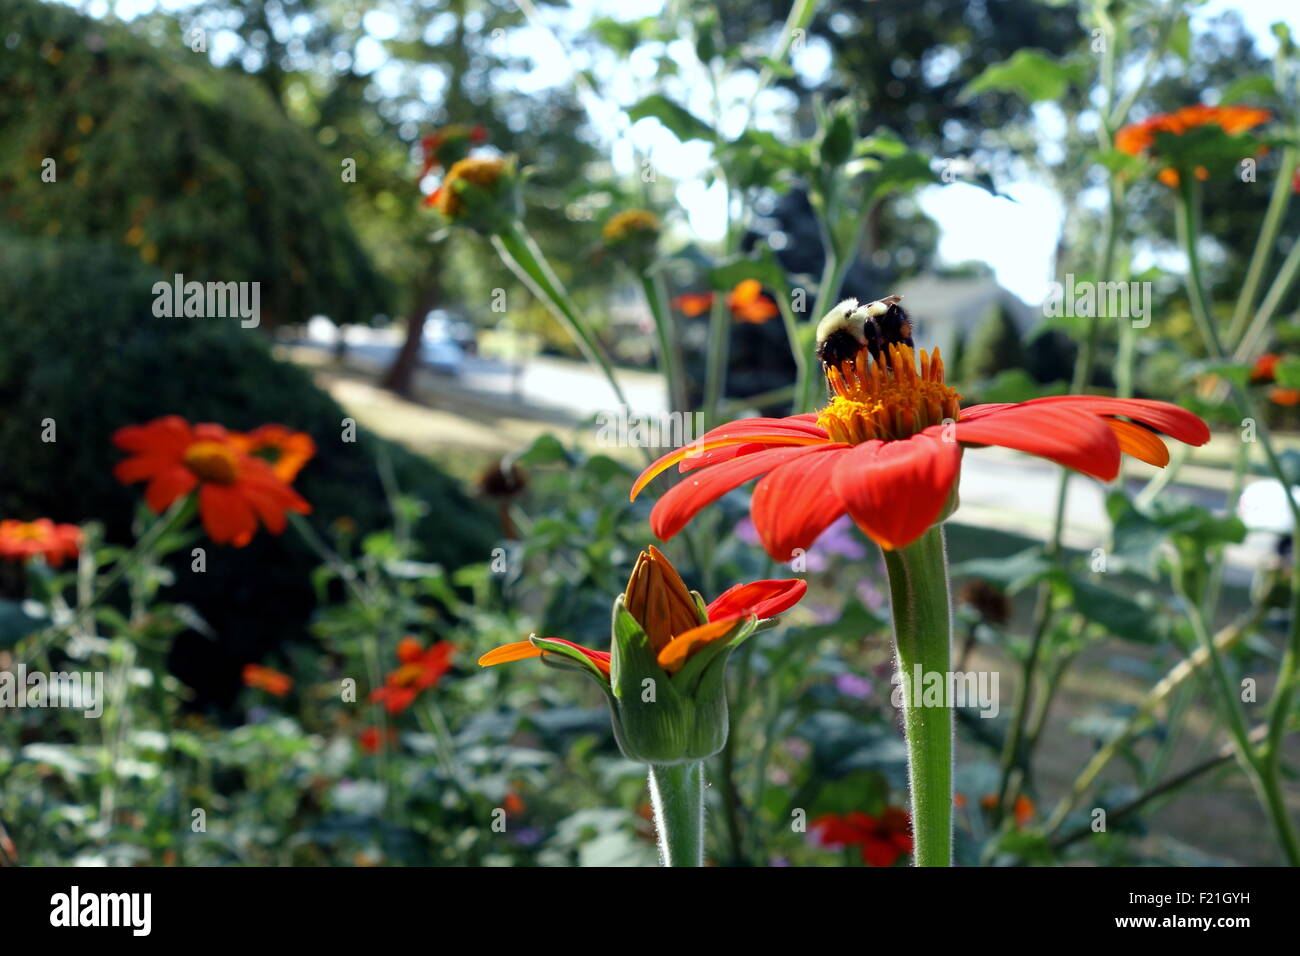 Bee pollinating Mexican sunflower - Stock Image